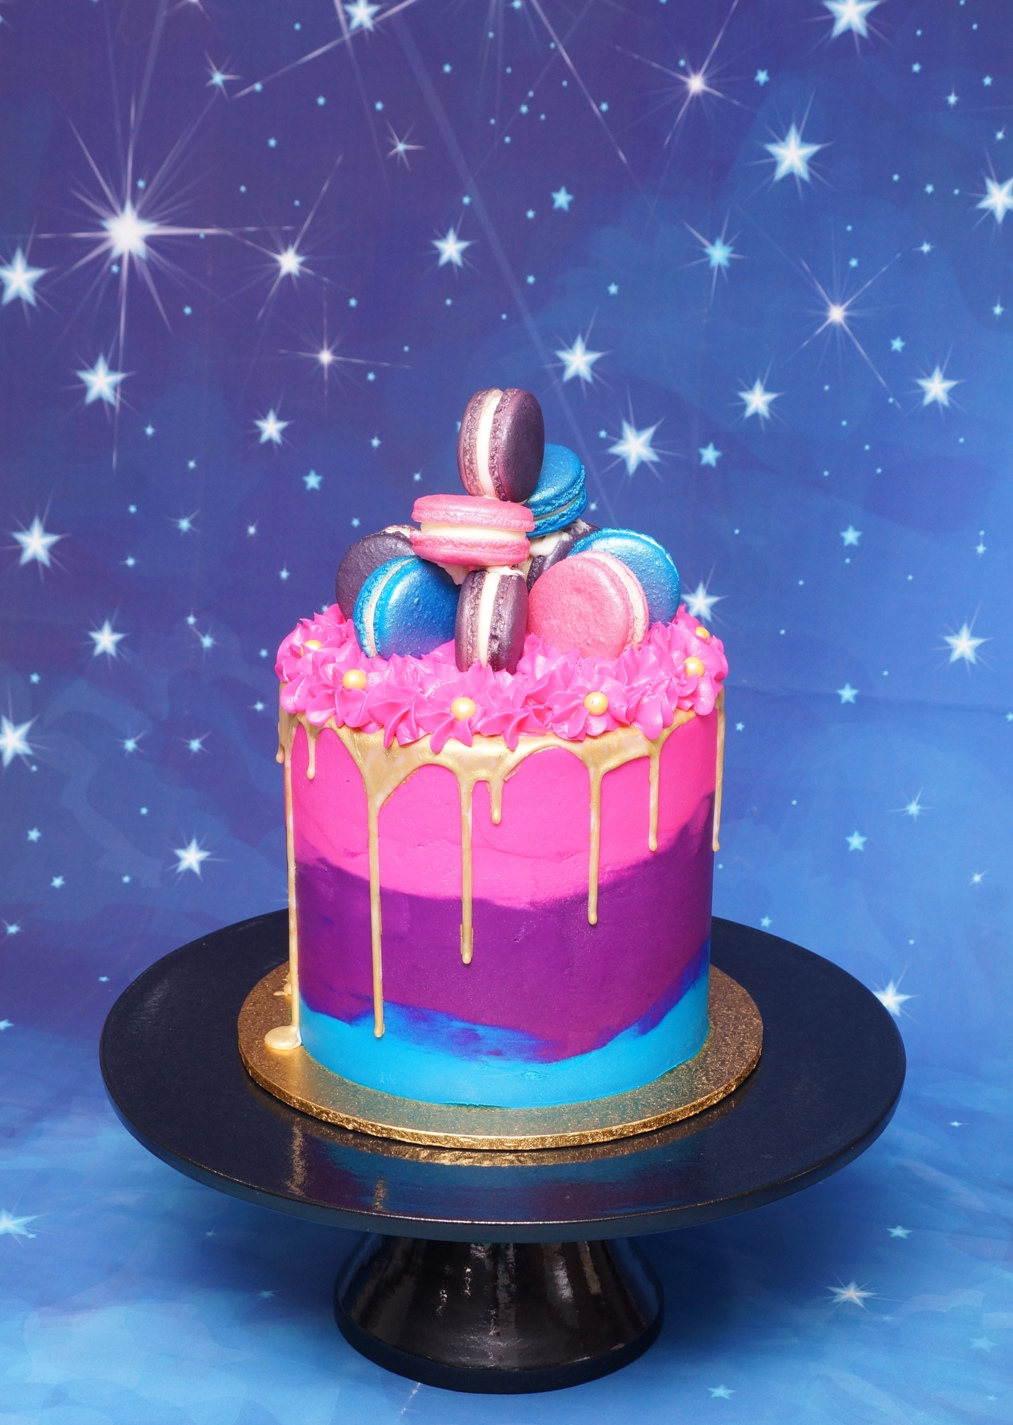 Bright pink, blue and purple buttercream